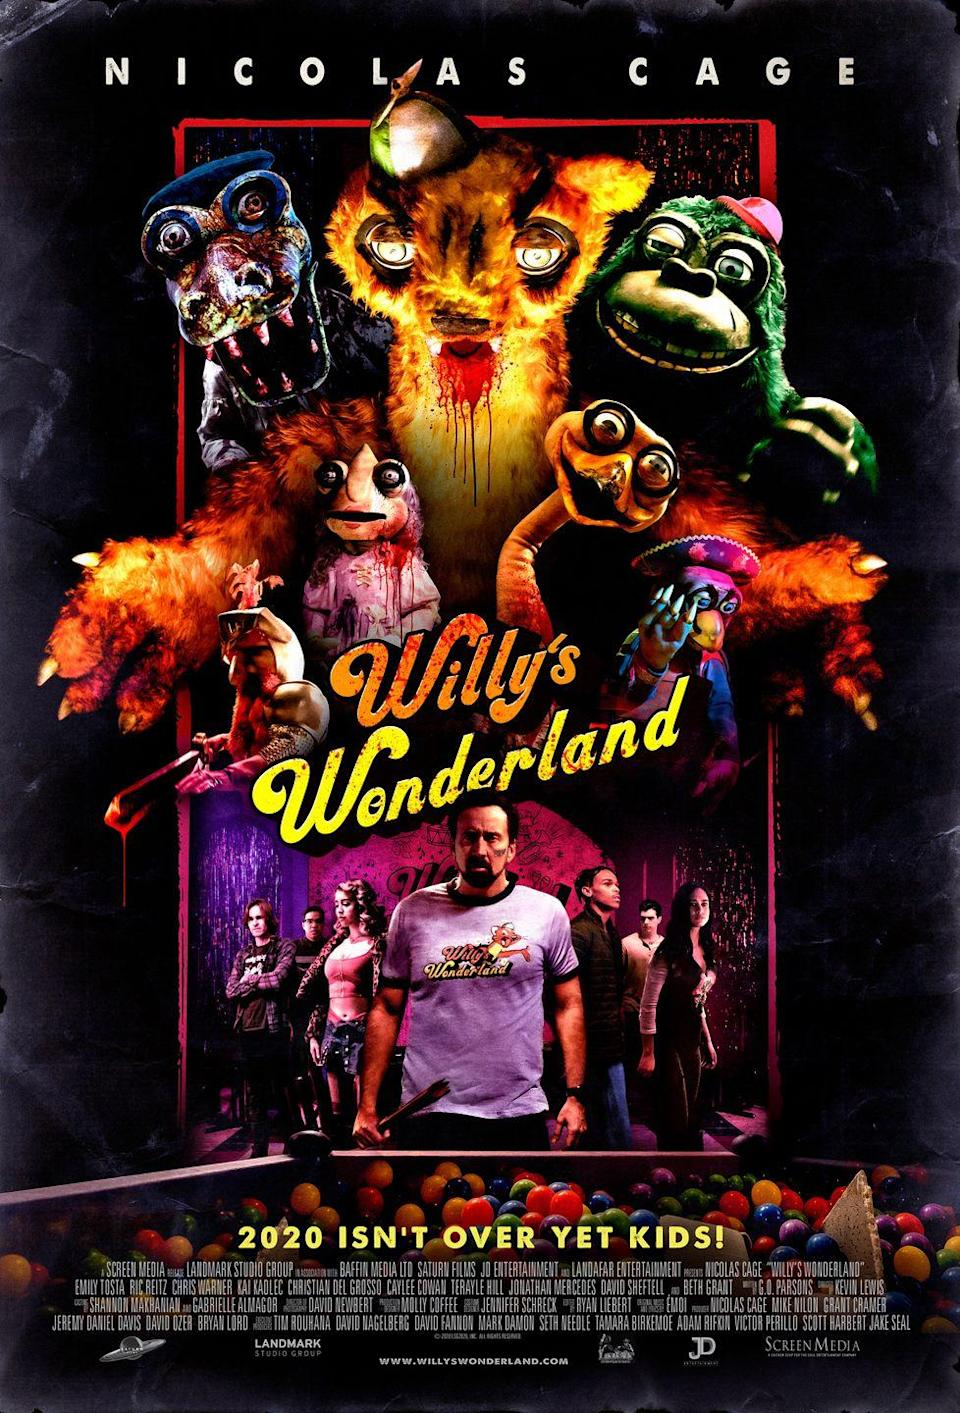 <p>There's never a convenient time or place for your car to break down but in front of an abandoned family fun center? That screams sinister plot. A man is forced to fight against possessed mascots after he experiences car trouble in front of Willy's Wonderland.</p>